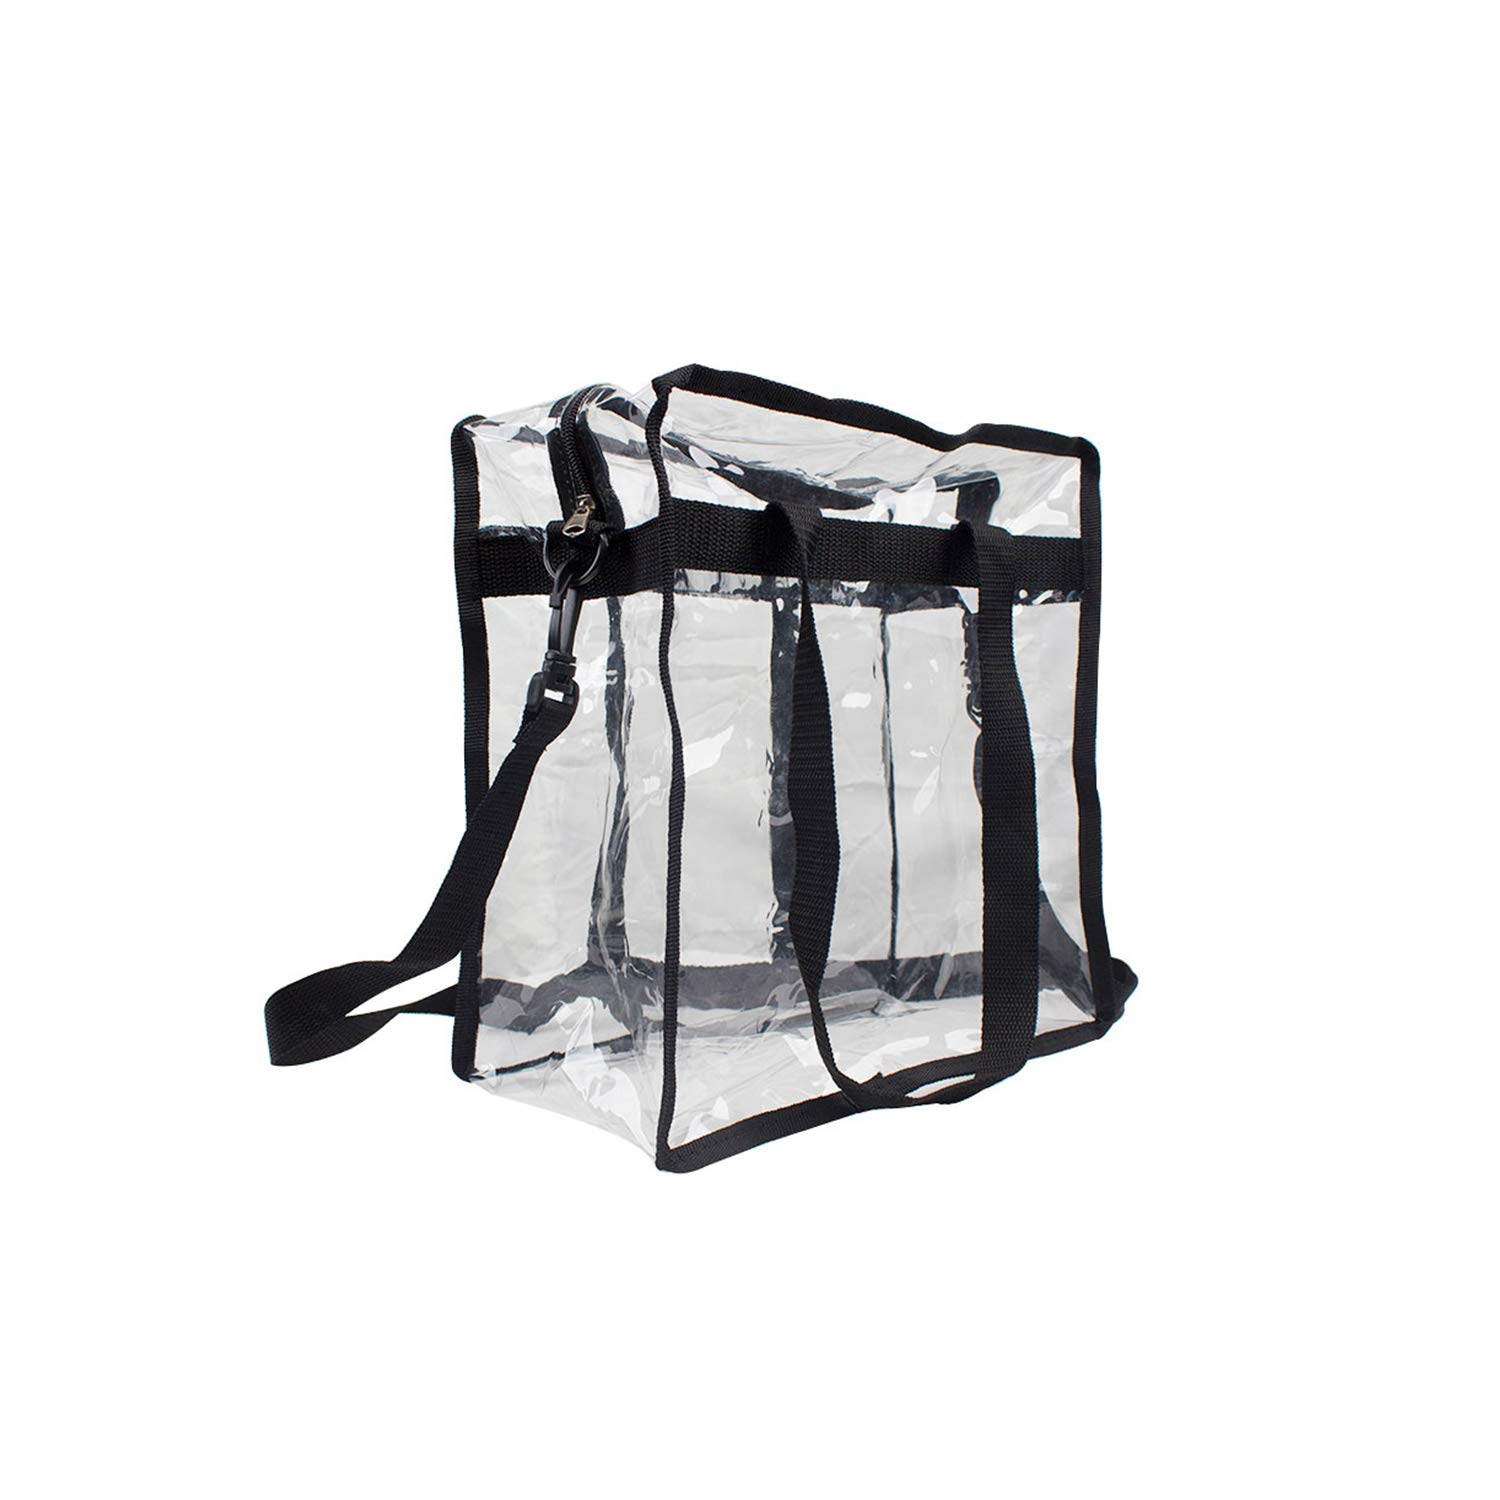 """Premium Clear Stadium Approved Bag - Clear Tote Bag with Cross Body Messenger Adjustable Shoulder Strap-12"""" X 12"""" X 6"""" by Zuess (Image #3)"""